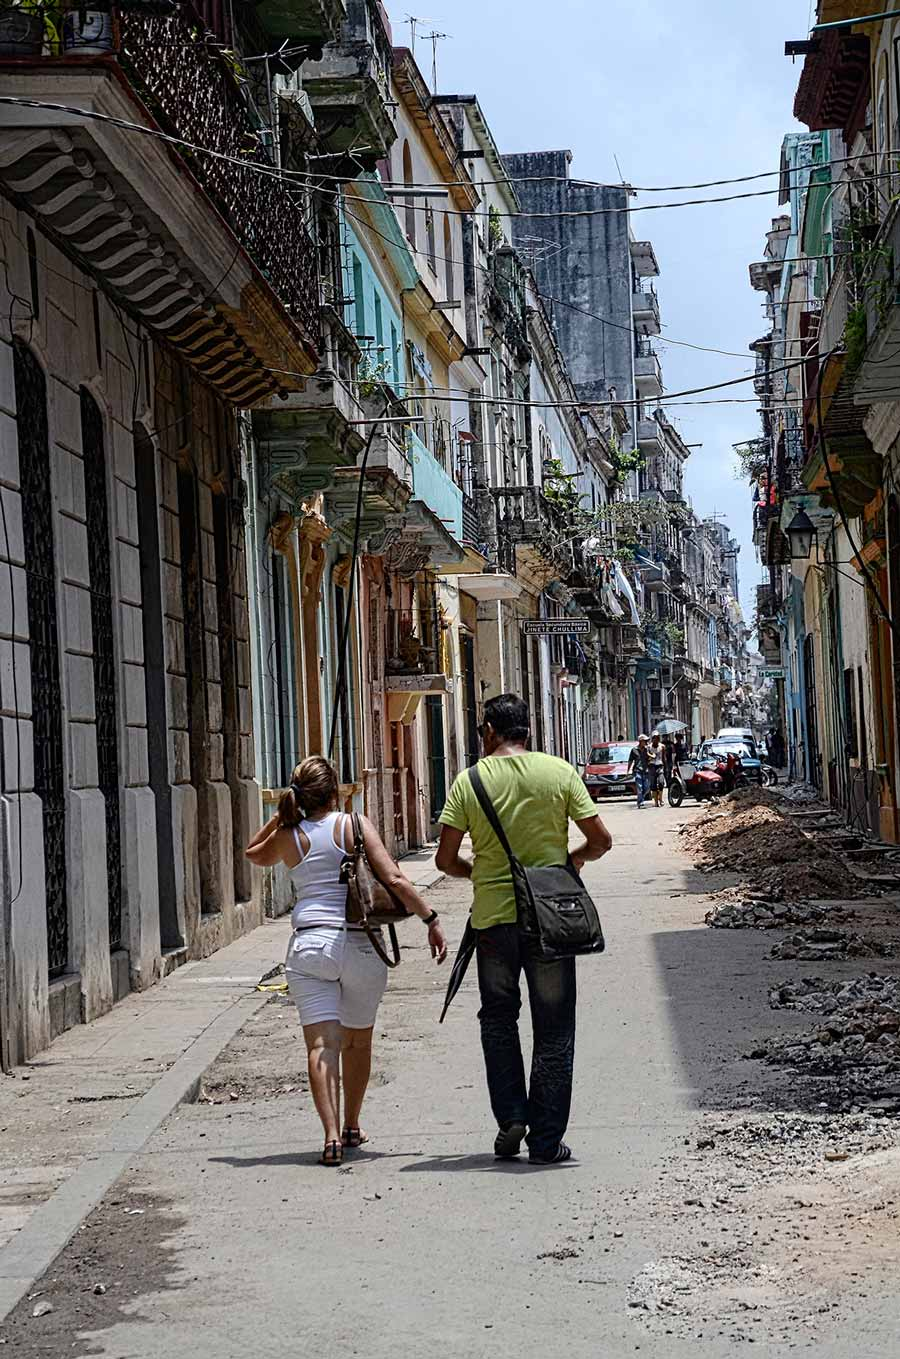 A couple walks in an Old Havana residential neighborhood